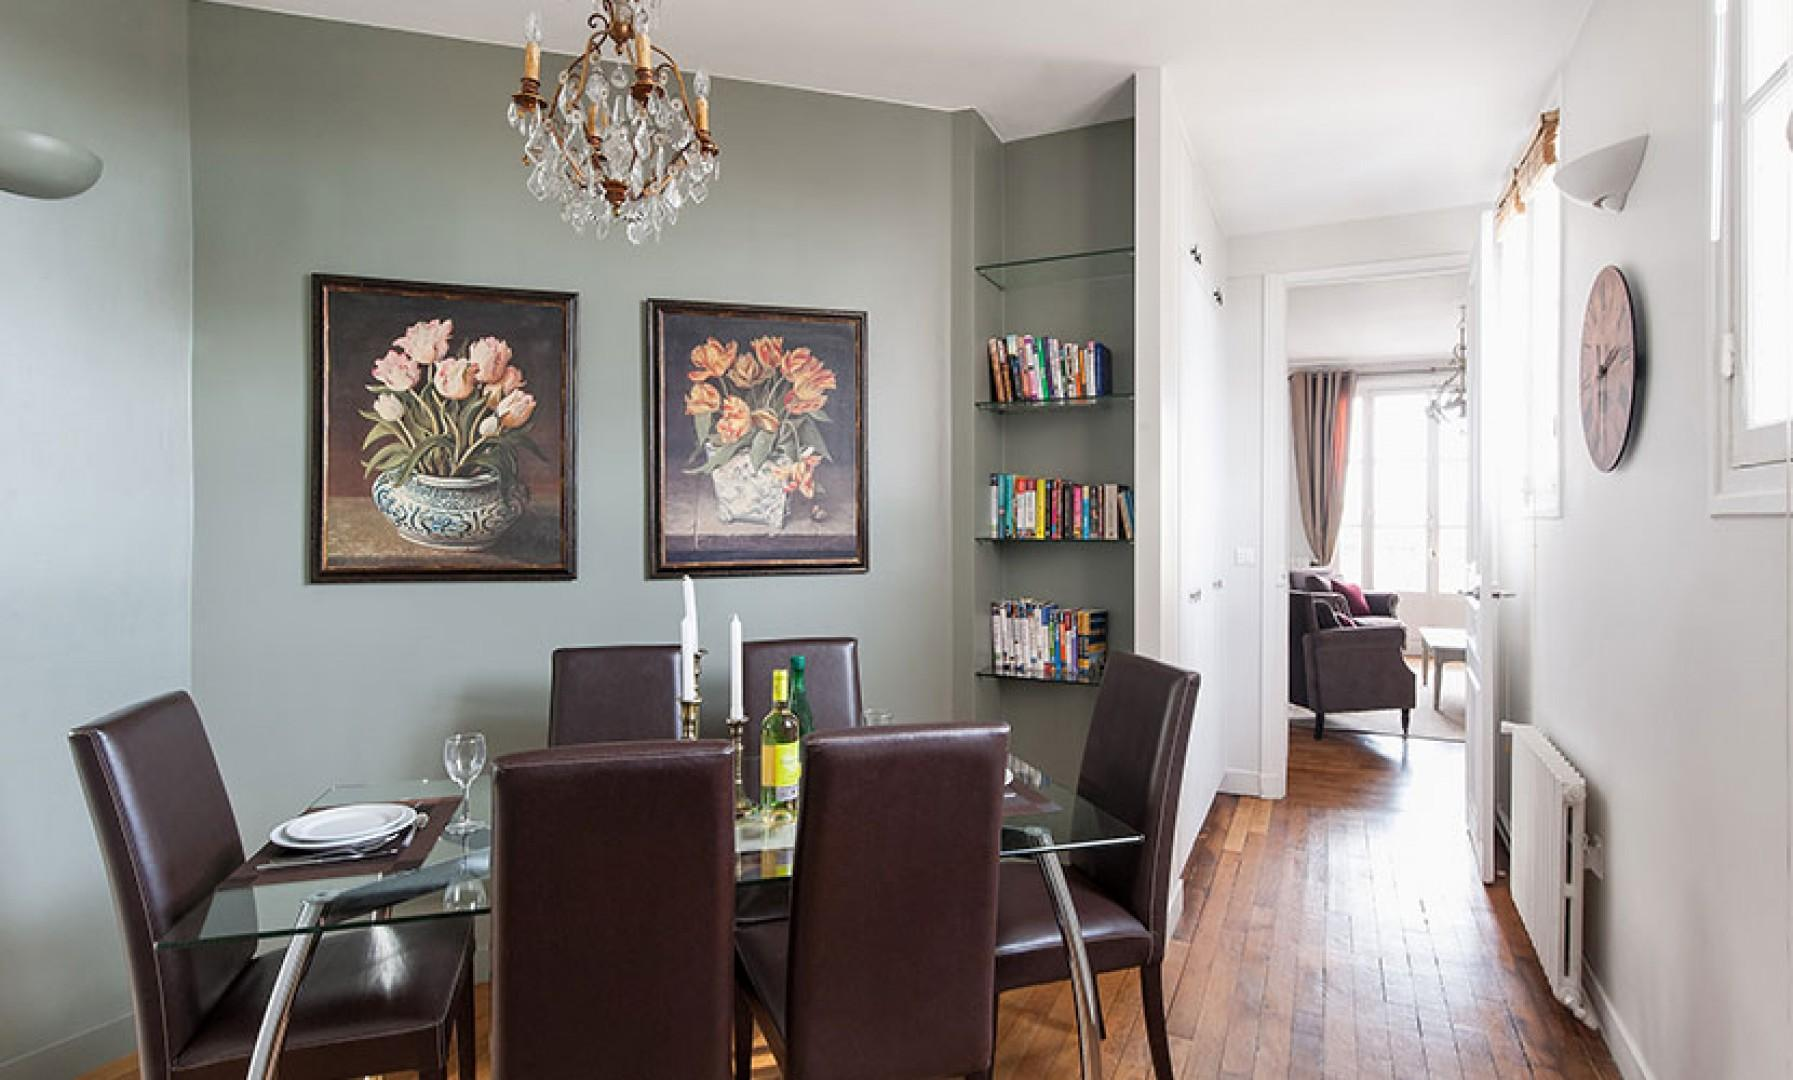 The comfortable dining area is conveniently set near the kitchen.